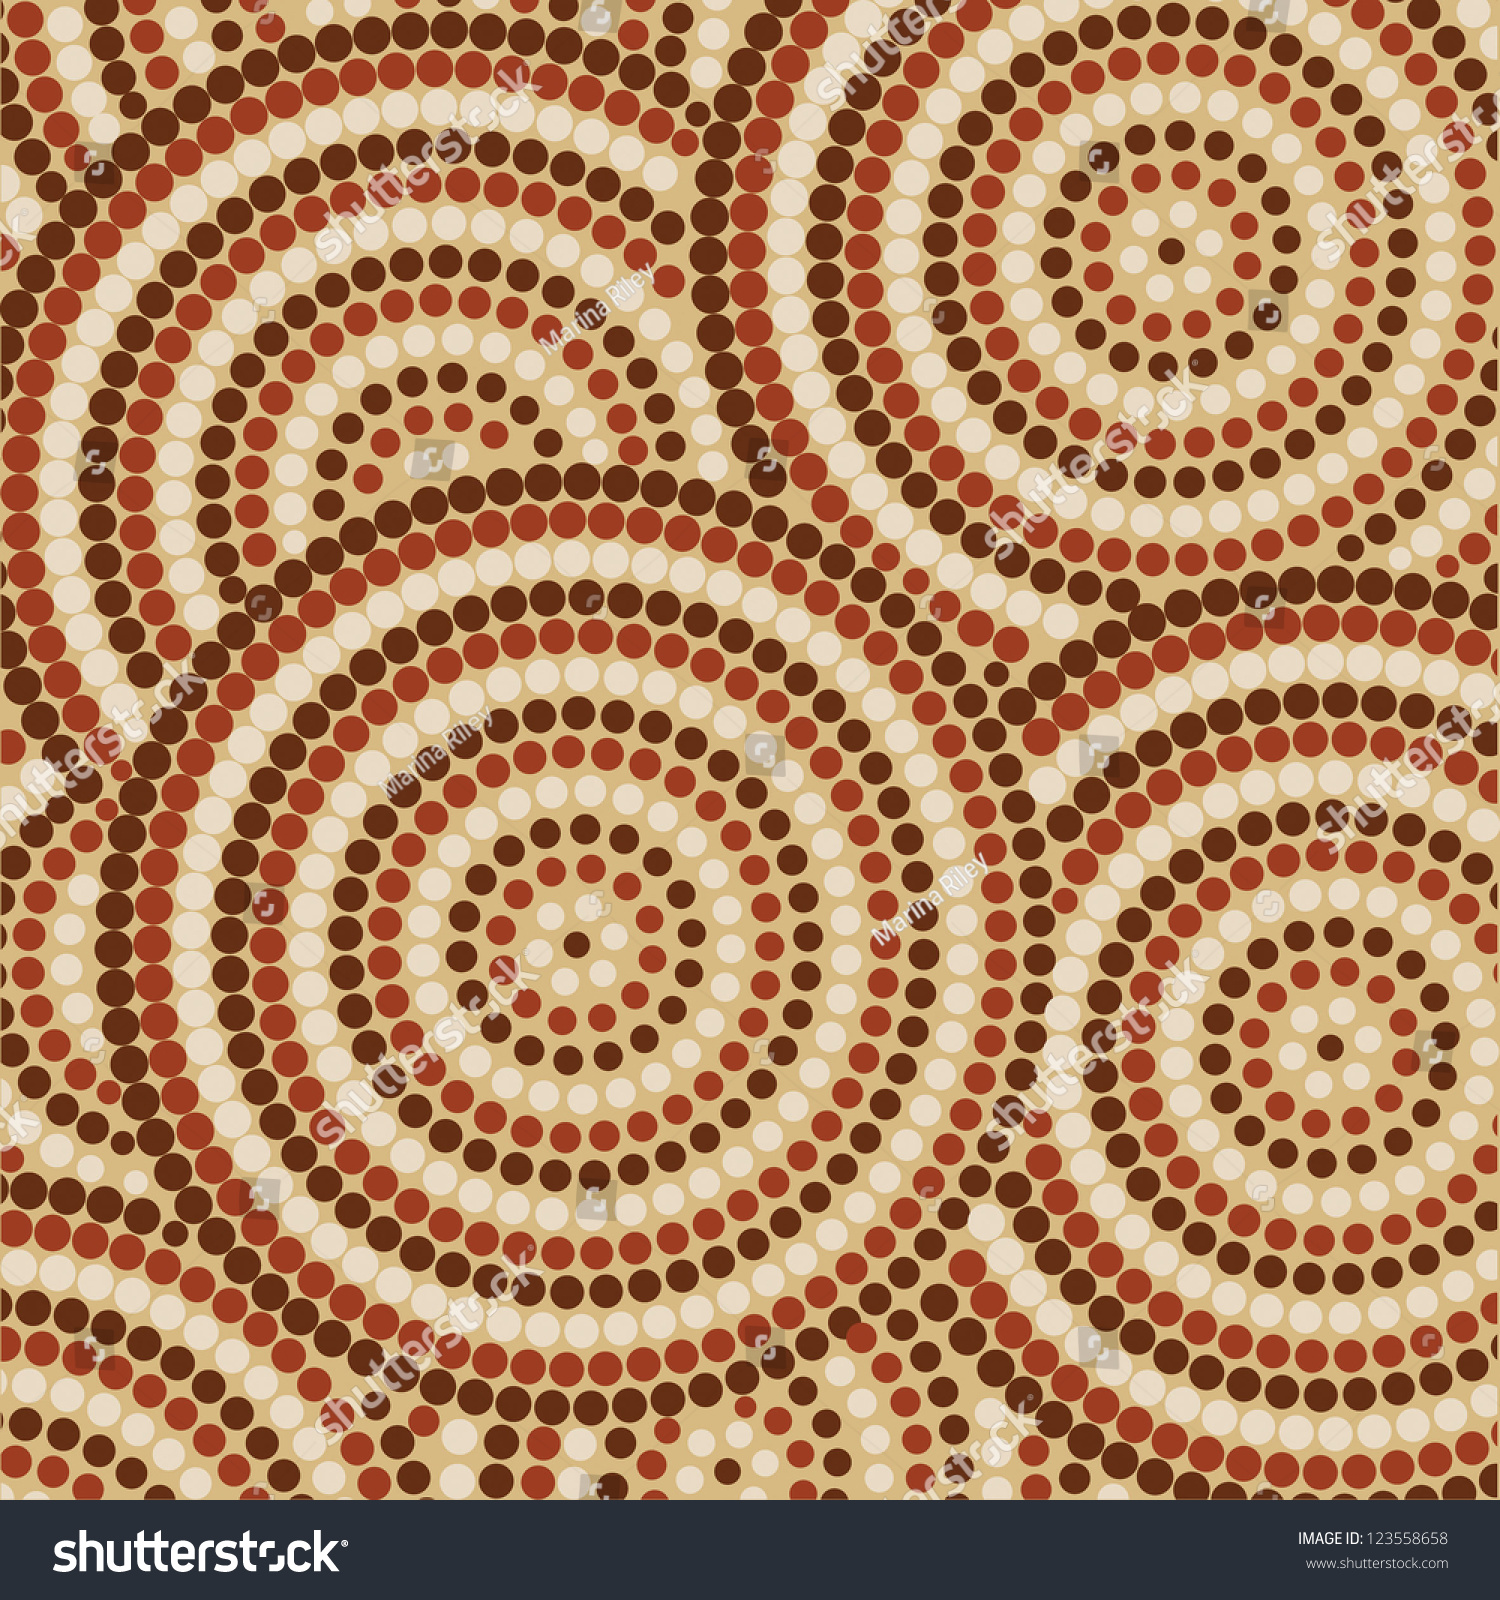 Aboriginal Dot Painting On White Paper